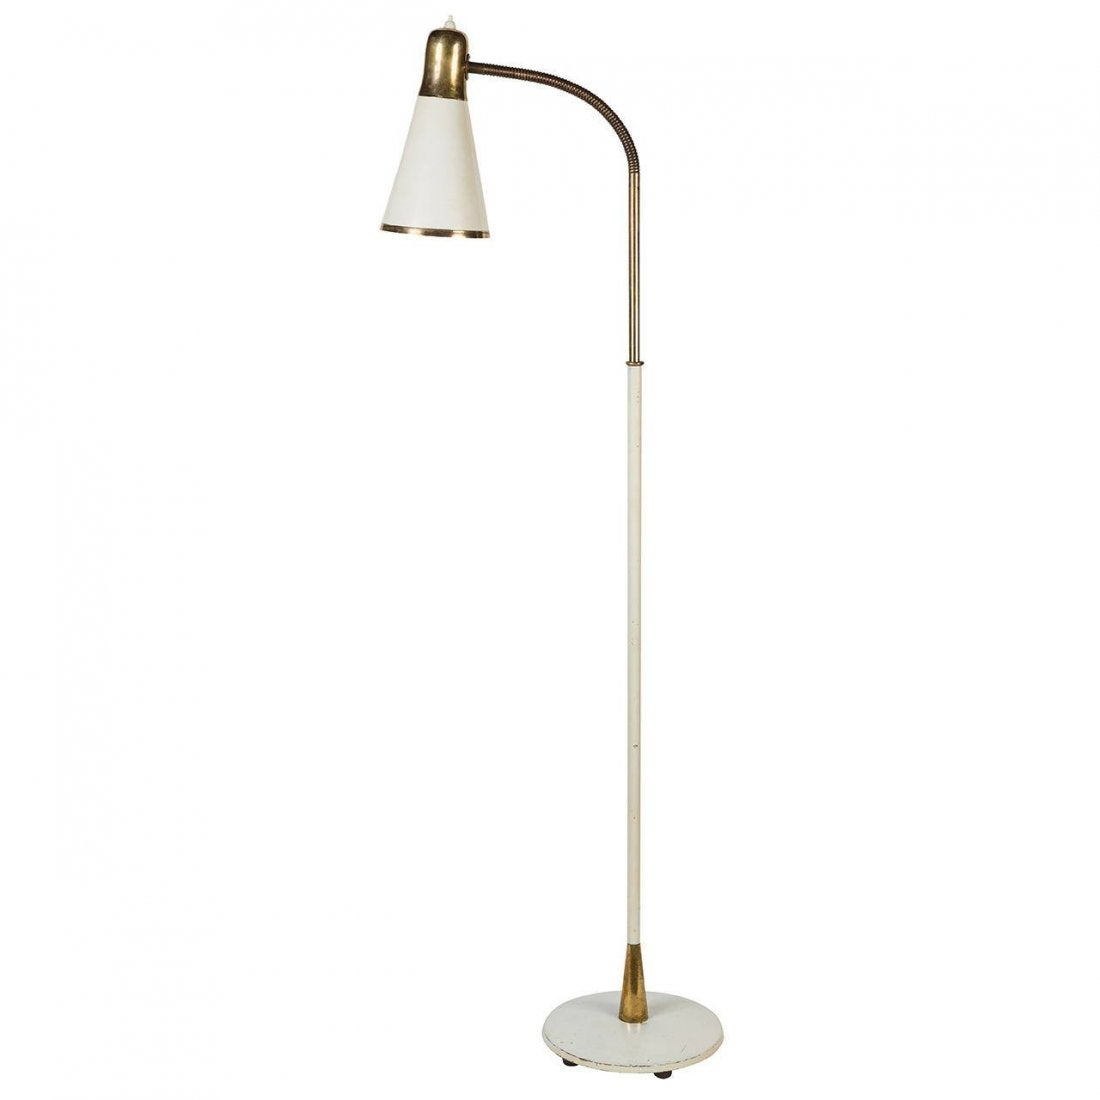 Birger Dahl Floor Lamp